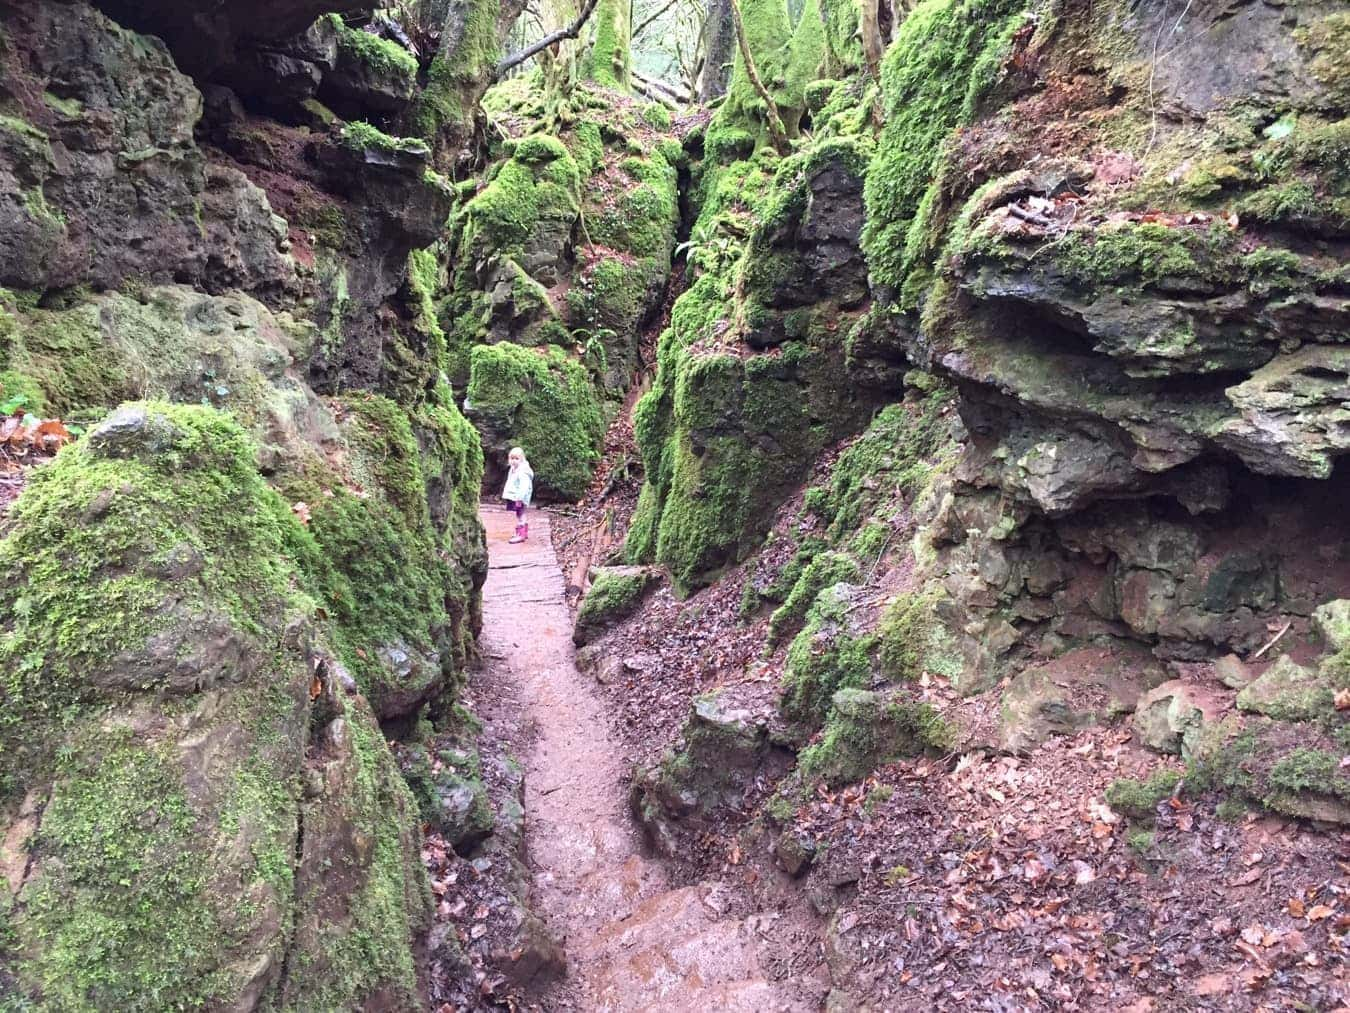 Star Wars is Filmed at Puzzlewood